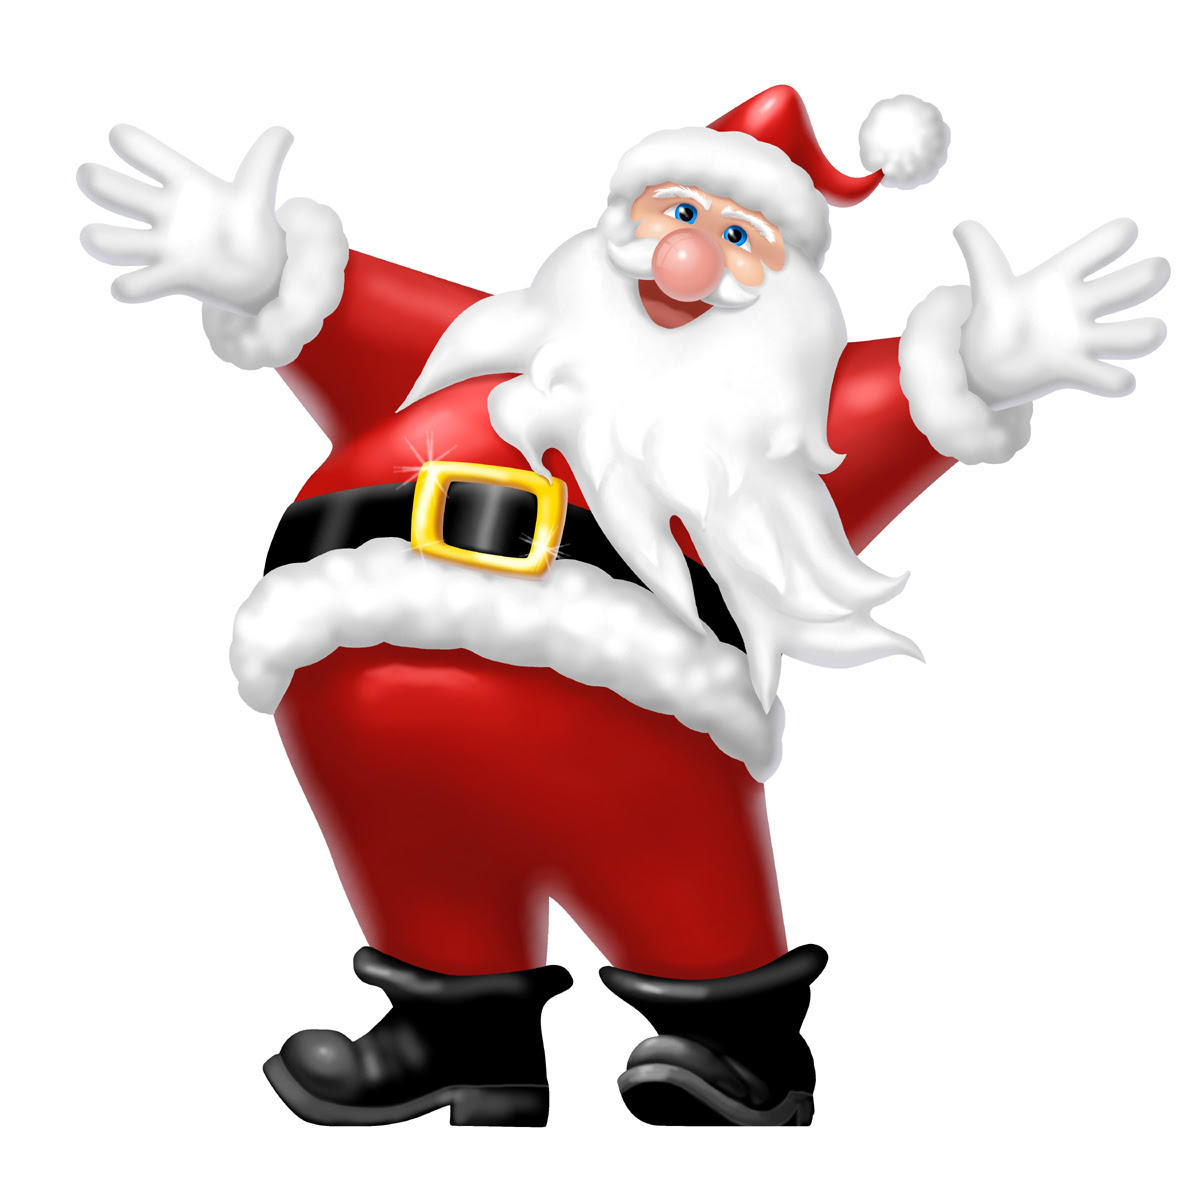 Santa Claus Animated Christmas Wallpaper Find Wallpapers